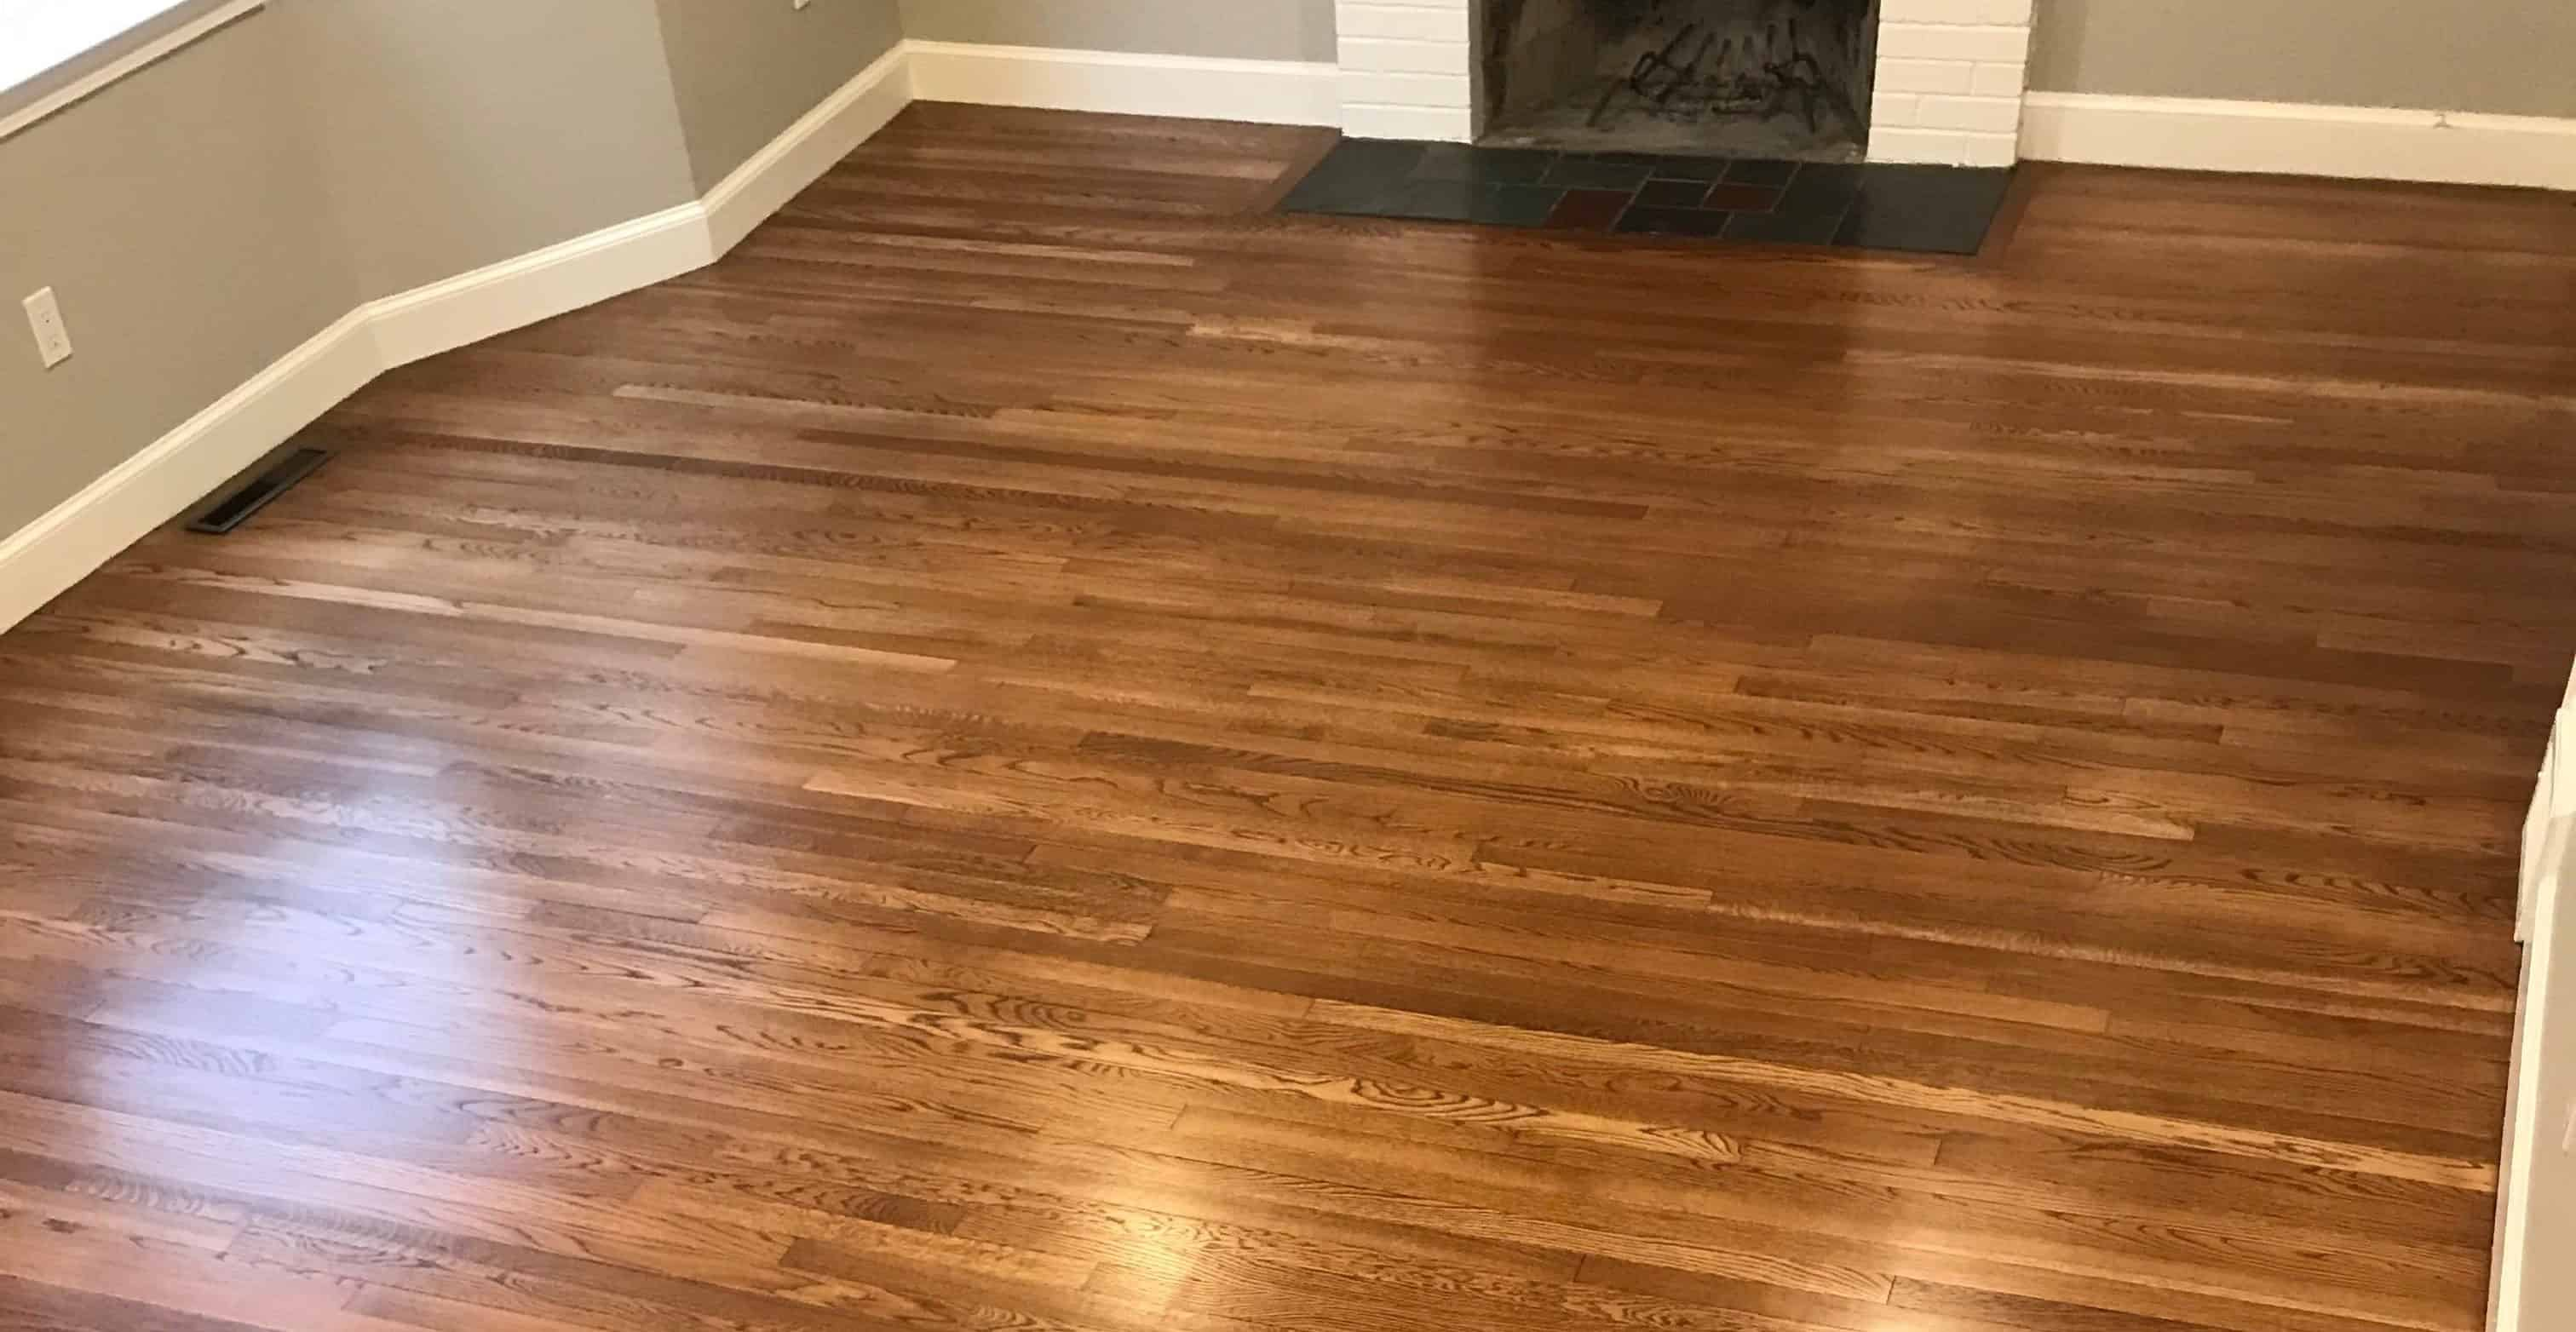 How To Deep Clean Hardwood Floors 5 Simple Steps Prudent